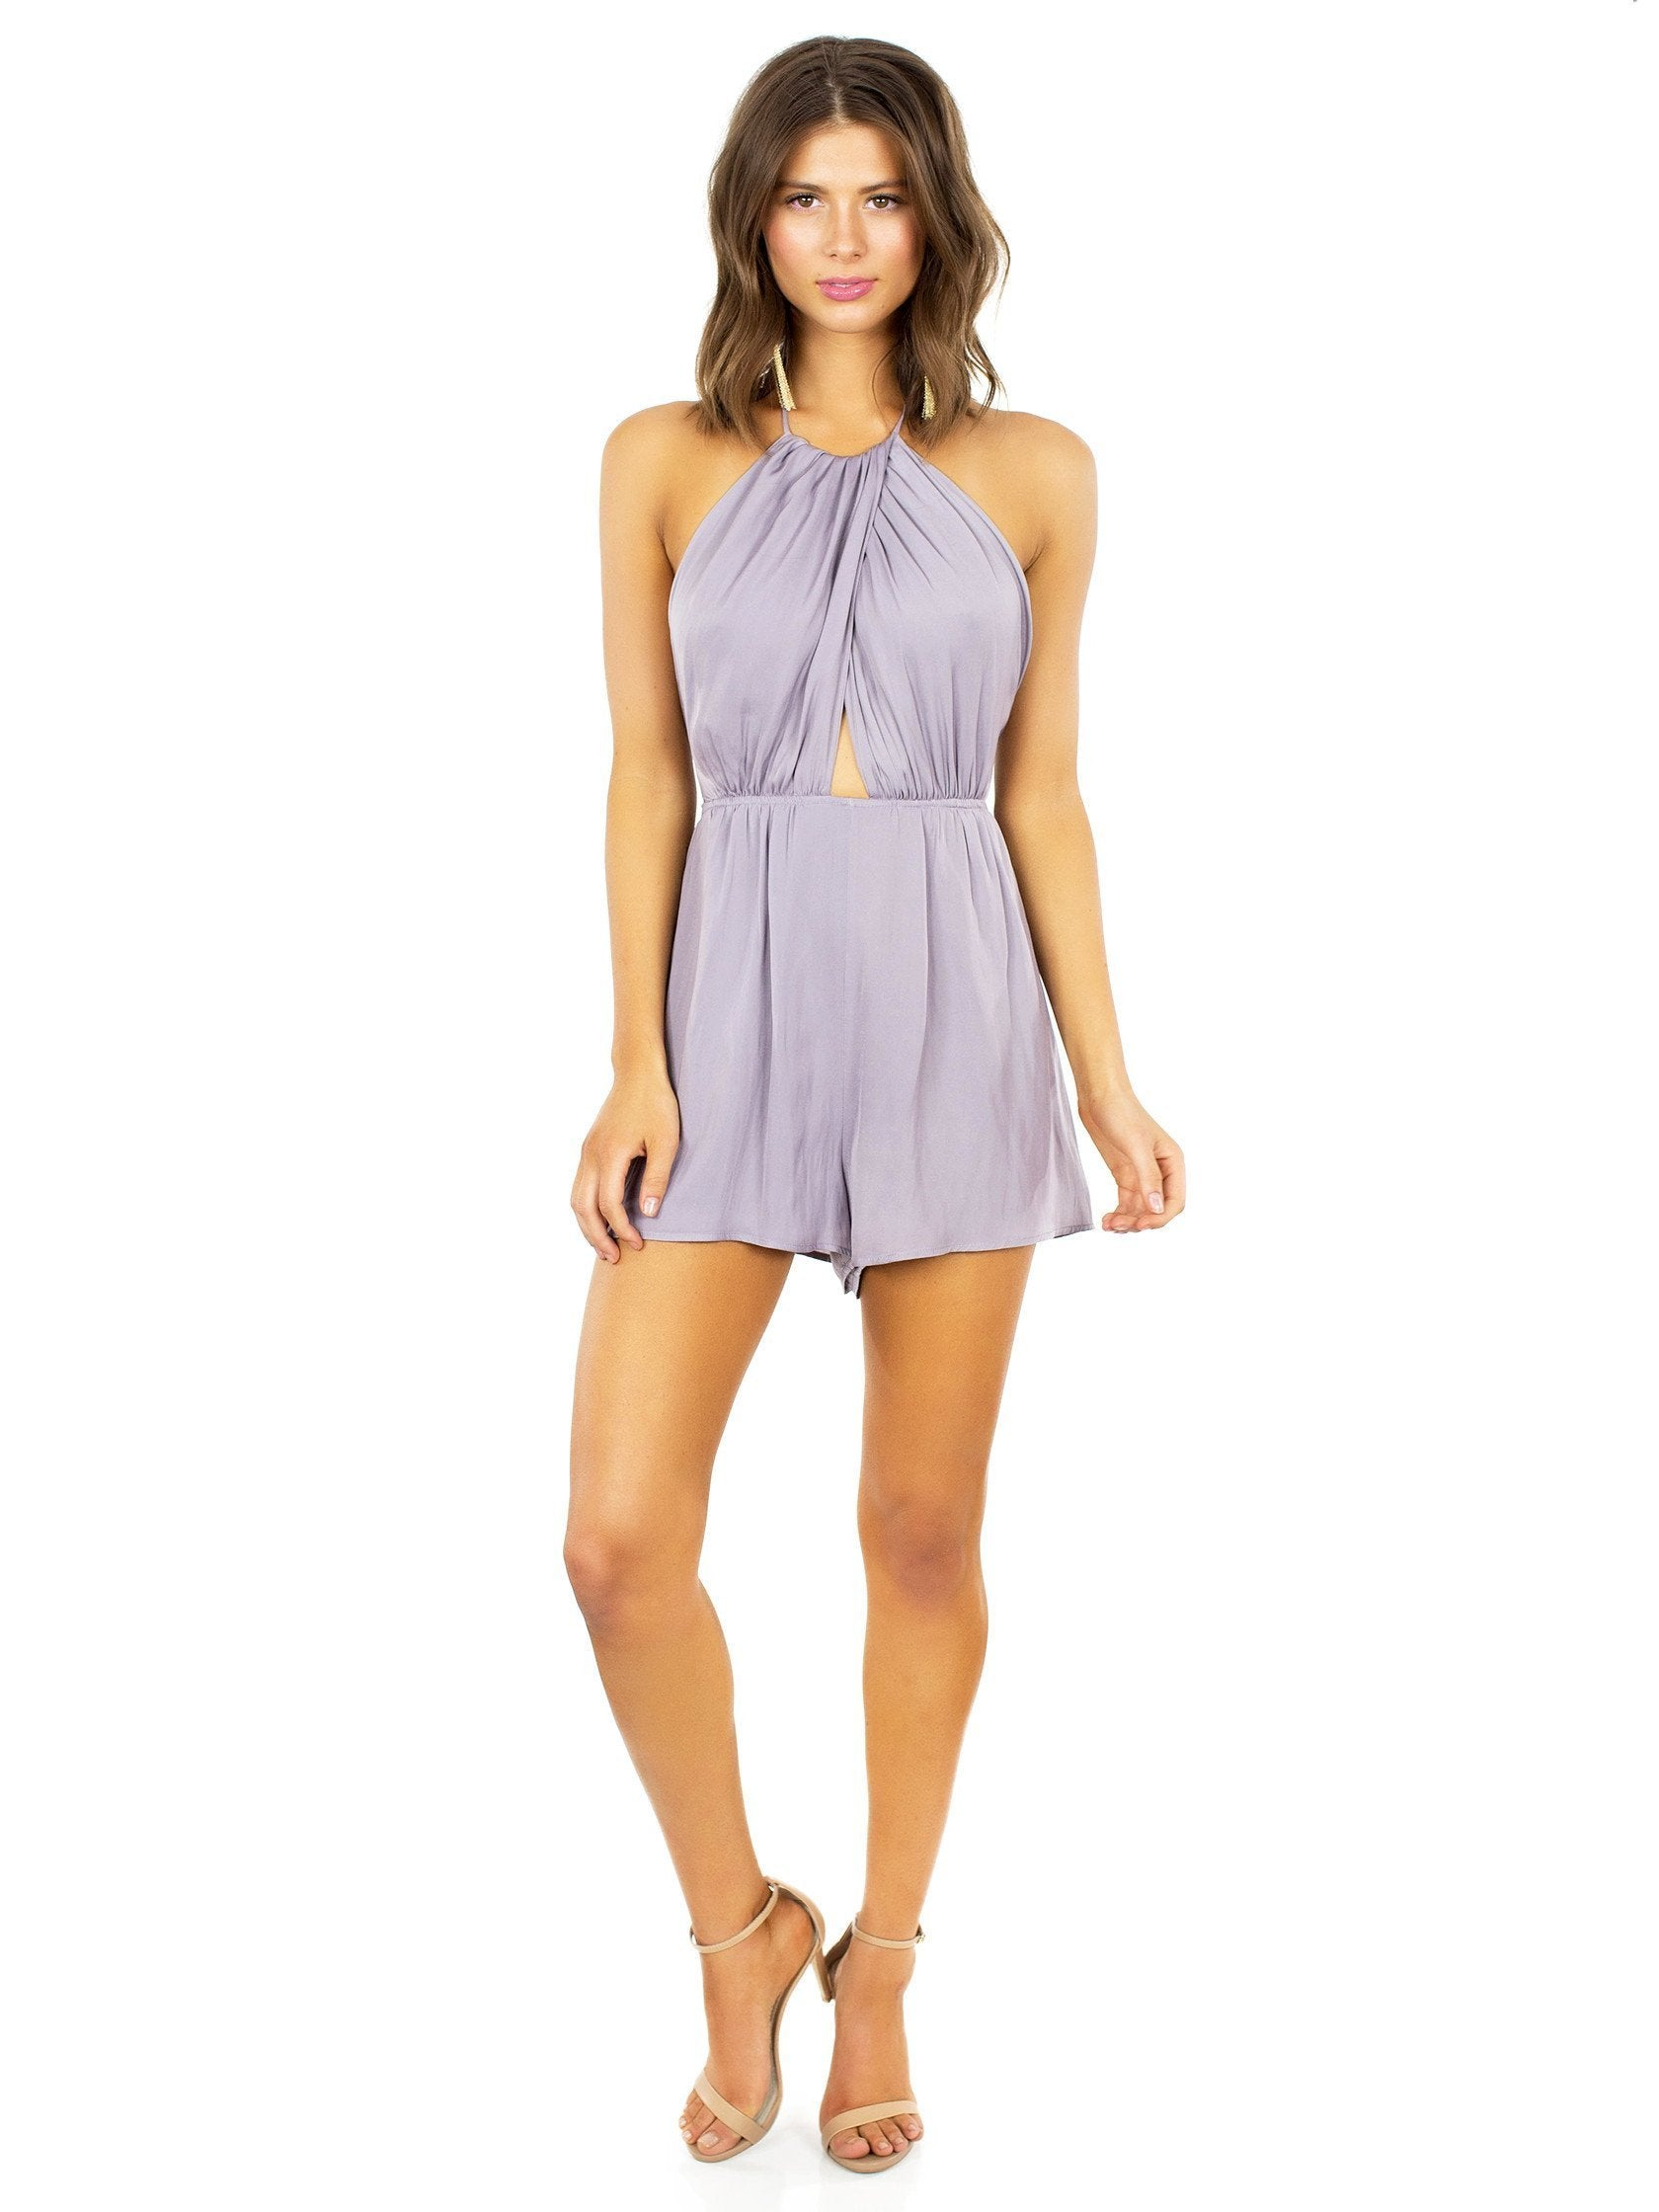 Girl outfit in a romper rental from Lush called Take A Chance Romper